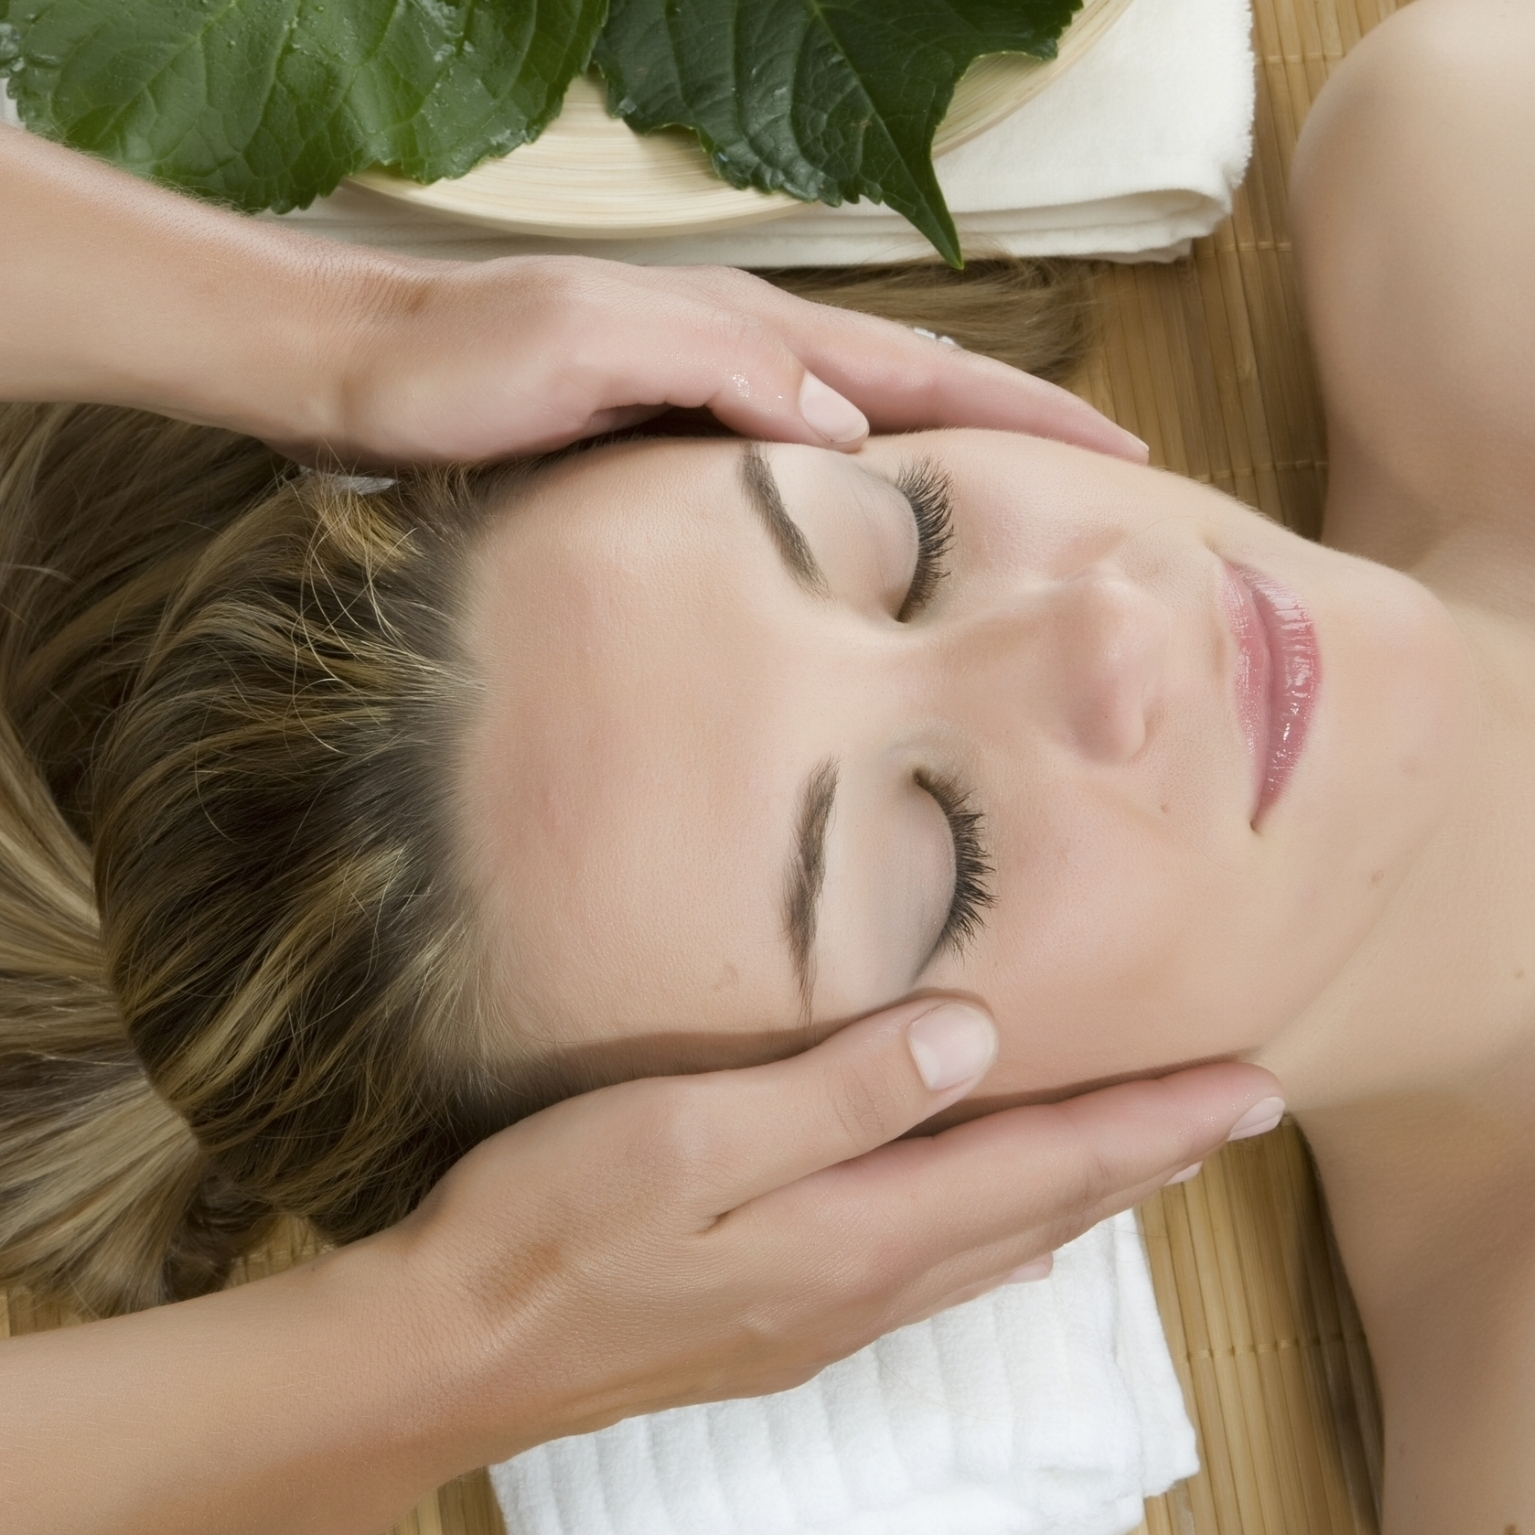 Usui Reiki Healing Treatment - Available in Cochrane, AB75 minute appointment - $75